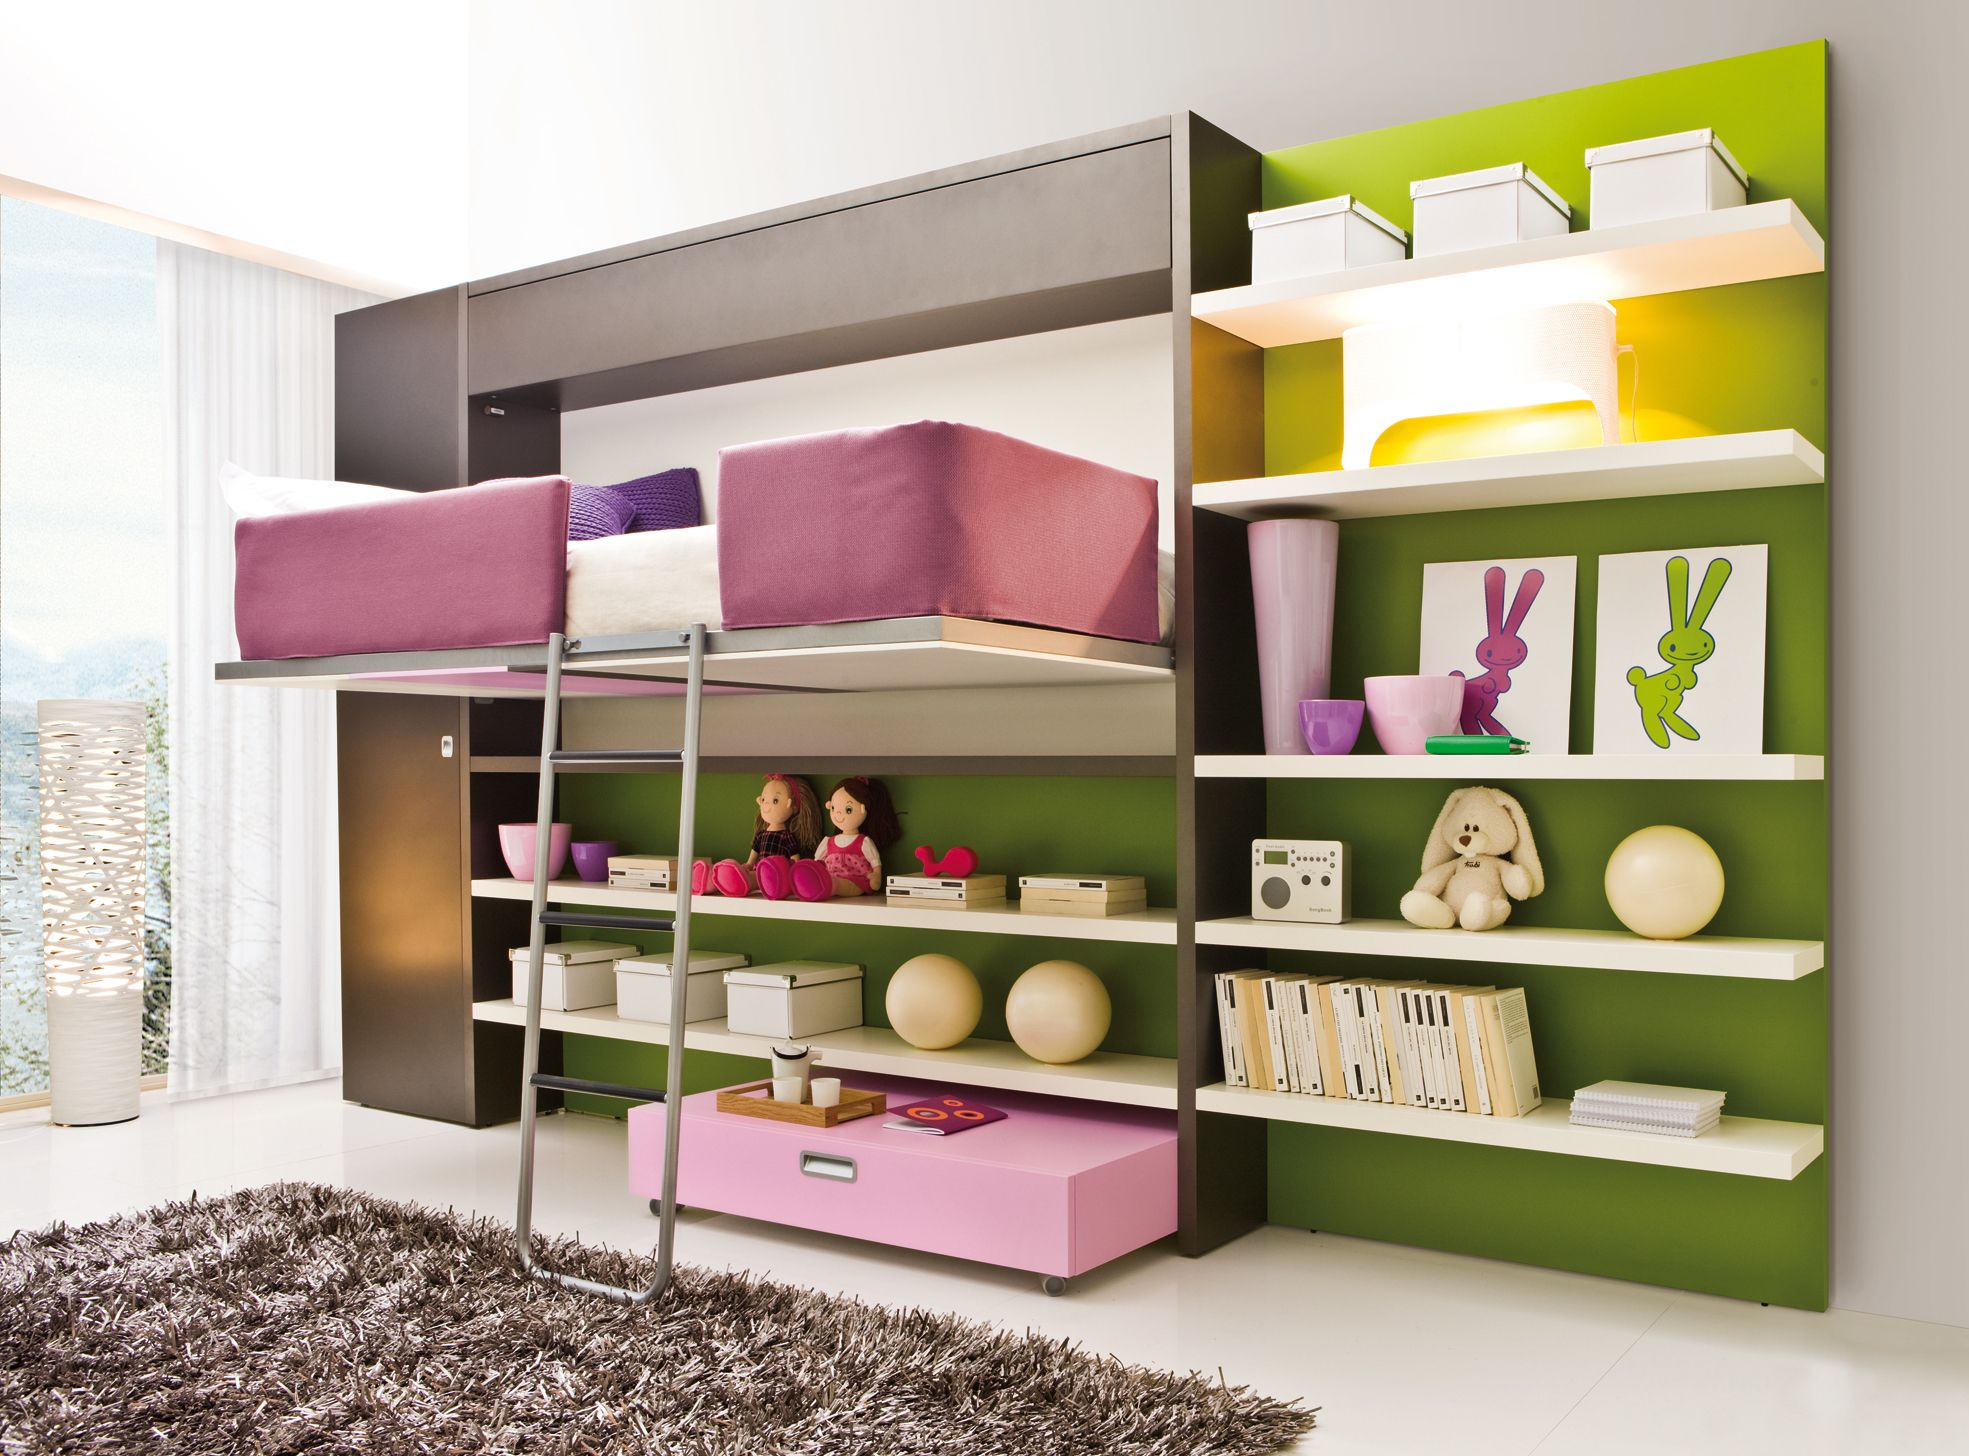 Small loft bed ideas  lovcuteteengebedroomfurnituredesignsforsmallspacescolor